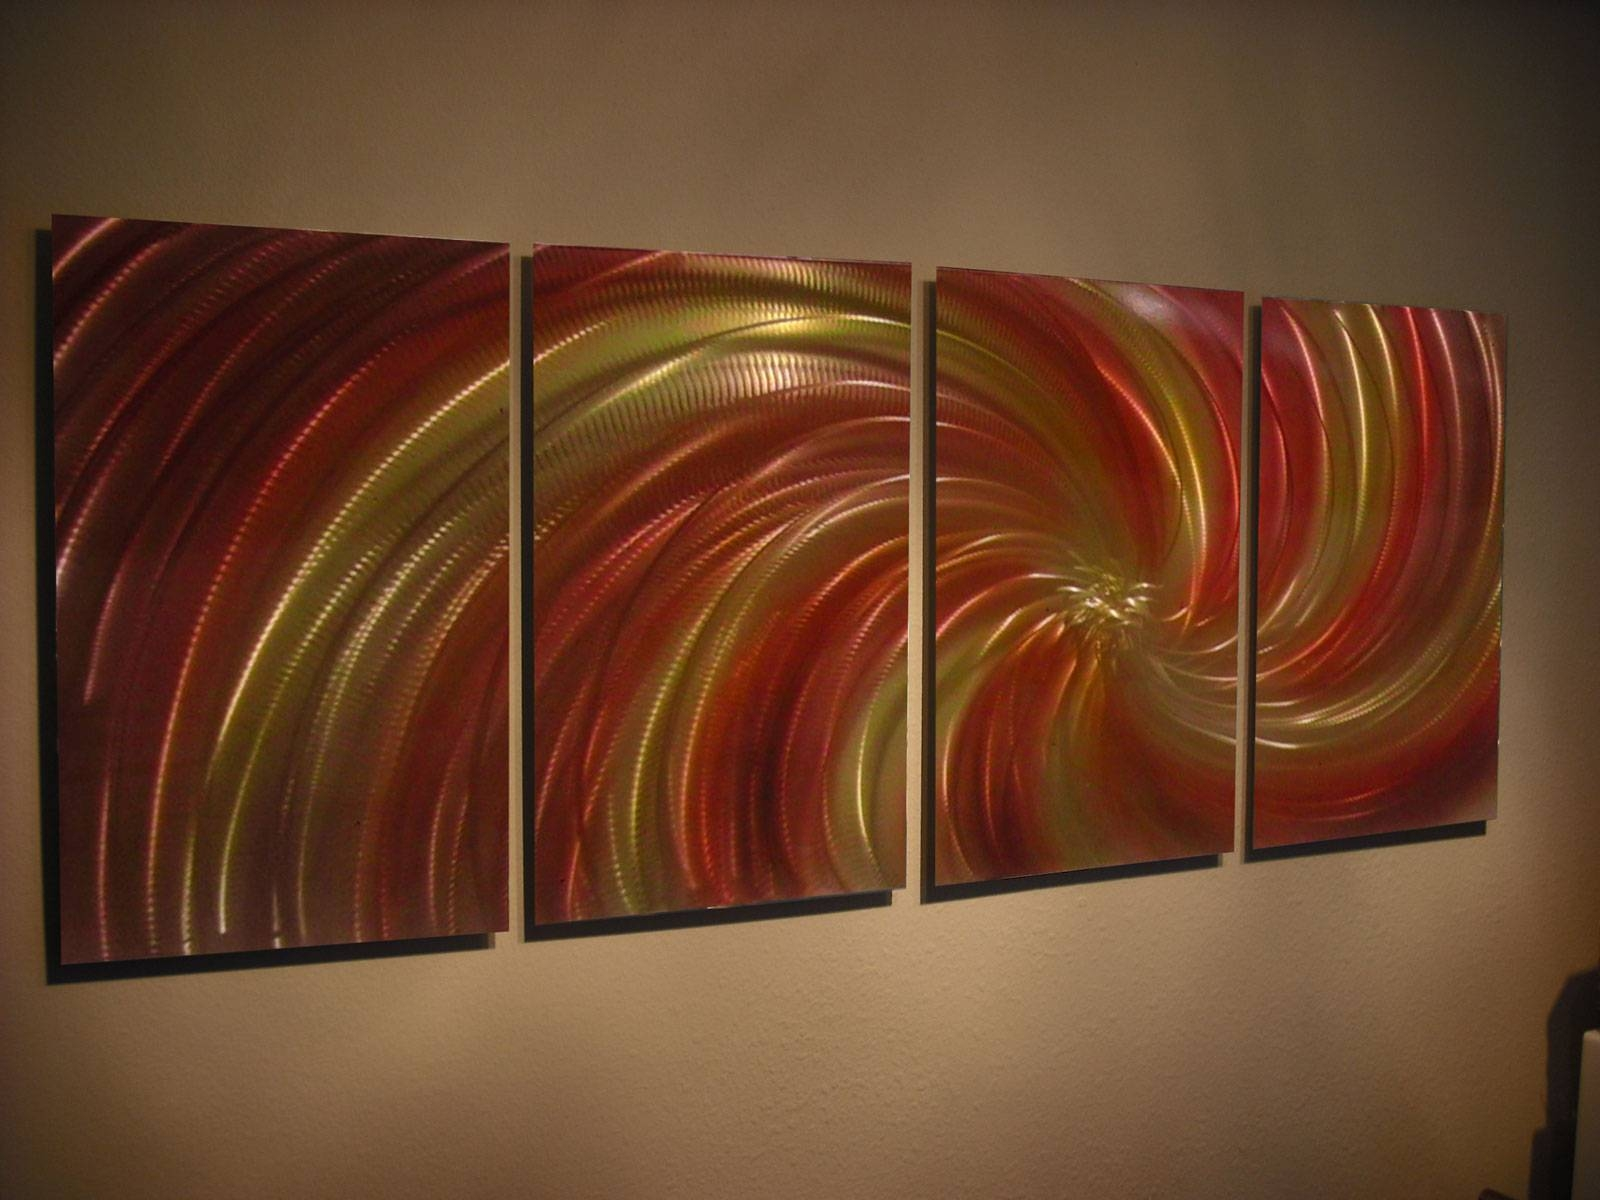 Harvest – Abstract Metal Wall Art Contemporary Modern Decor Within Most Recent Orange Metal Wall Art (Gallery 12 of 20)